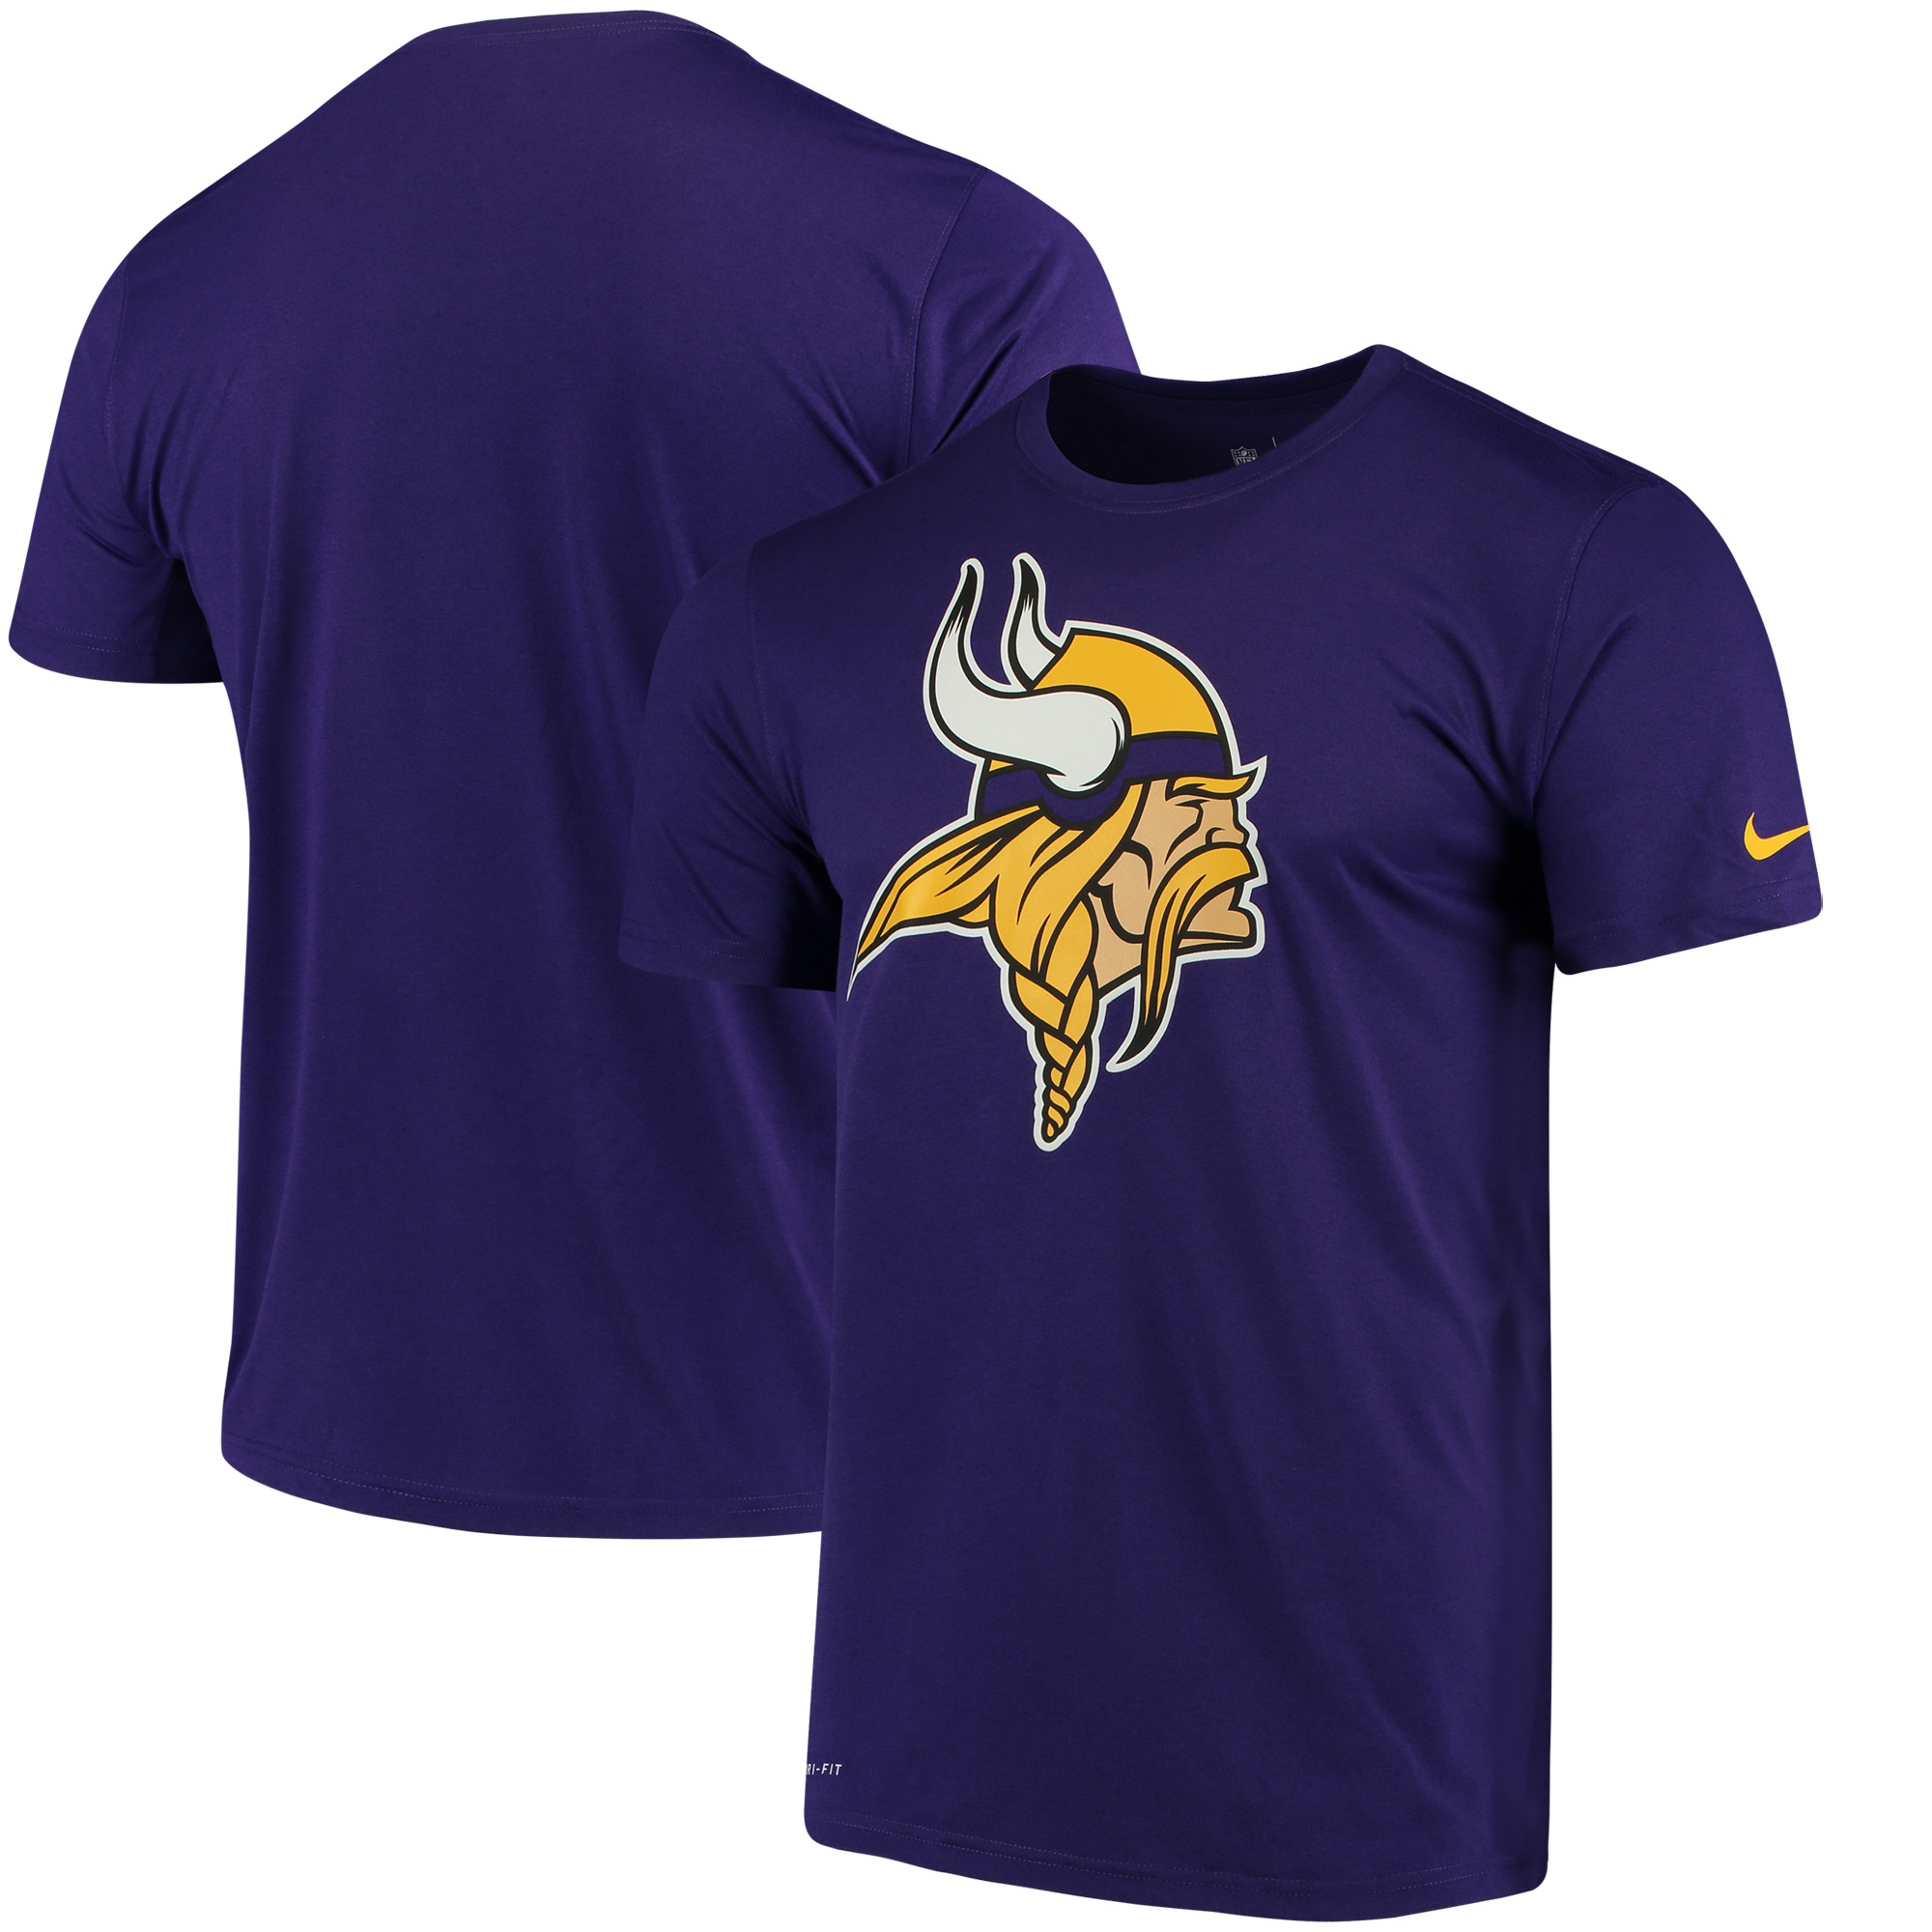 Men's Nike Purple Minnesota Vikings Legend Logo Essential 3 Performance T-Shirt